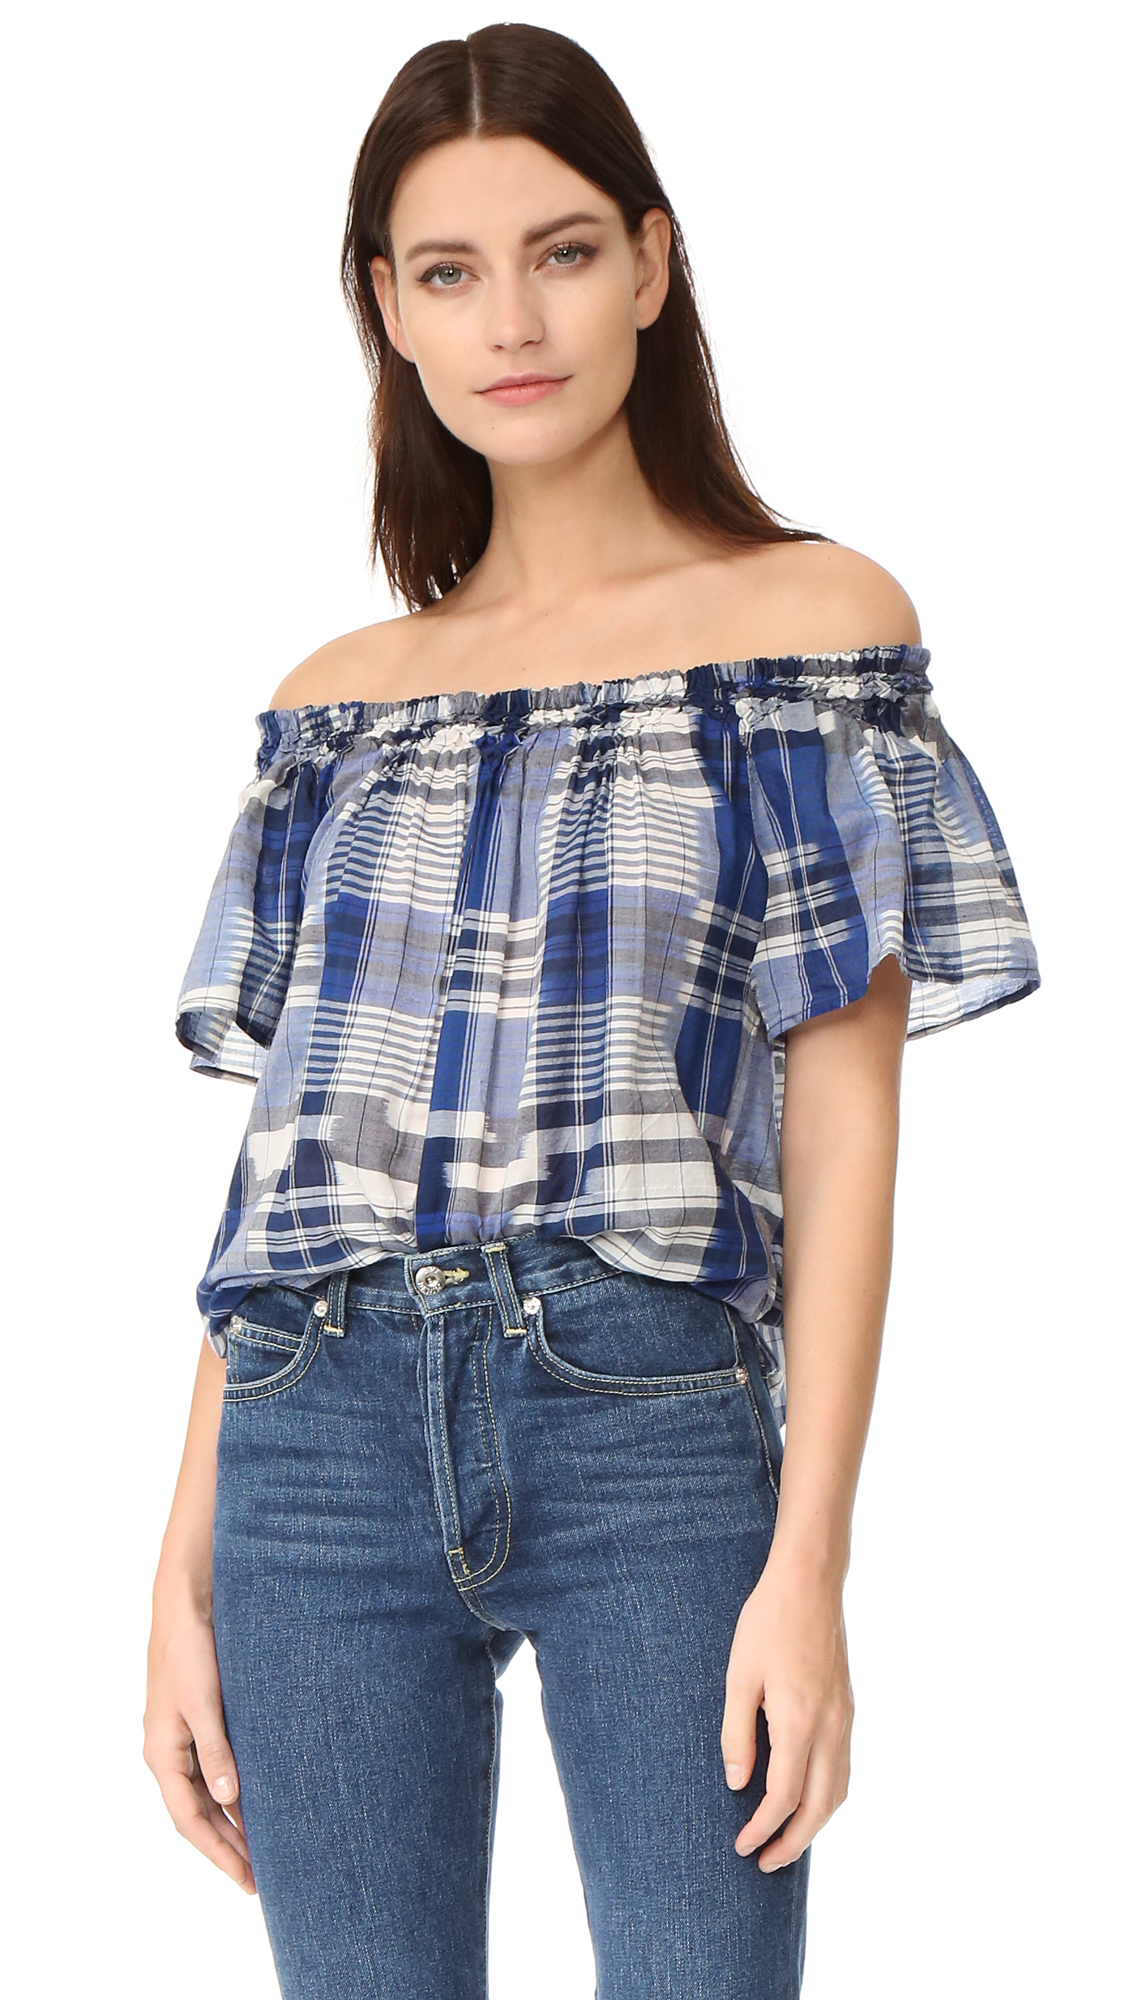 Ikat stripes accent this faded Ulla Johnson blouse. Lattice smocking traces the off shoulder neckline. Short sleeves. Fabric: Soft shirting. 100% cotton. Hand wash. Imported, India. Measurements Length: 22.75in / 58cm, from shoulder Measurements from size 4. Available sizes: 0,2,4,6,10